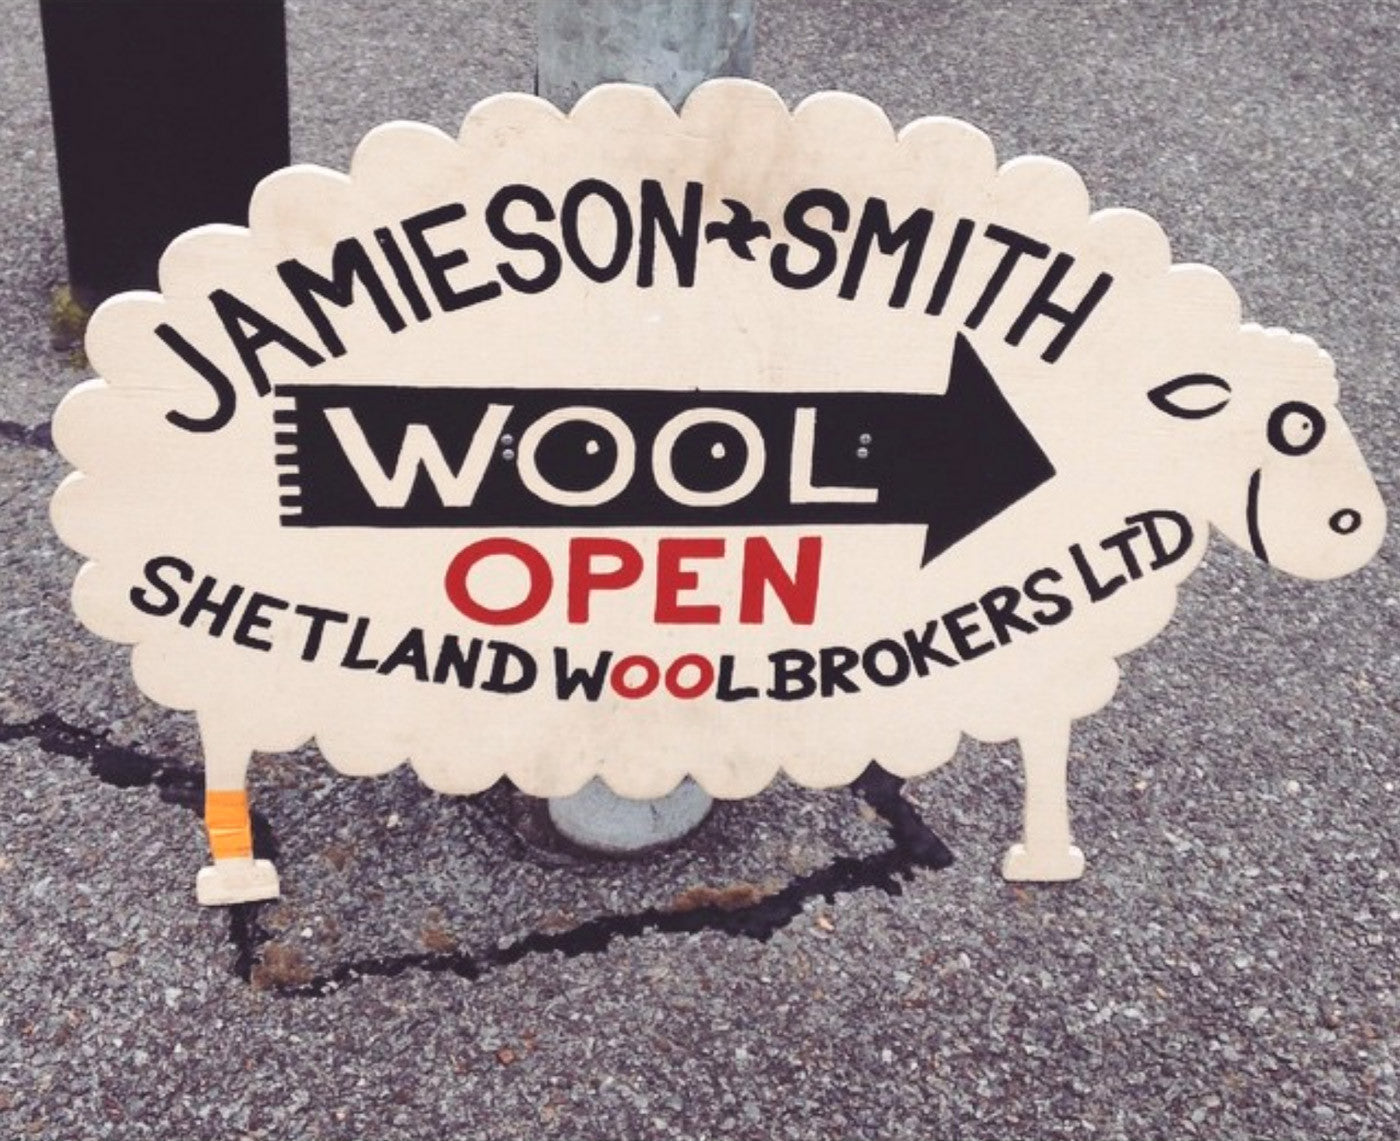 Jamieson and Smith store sign